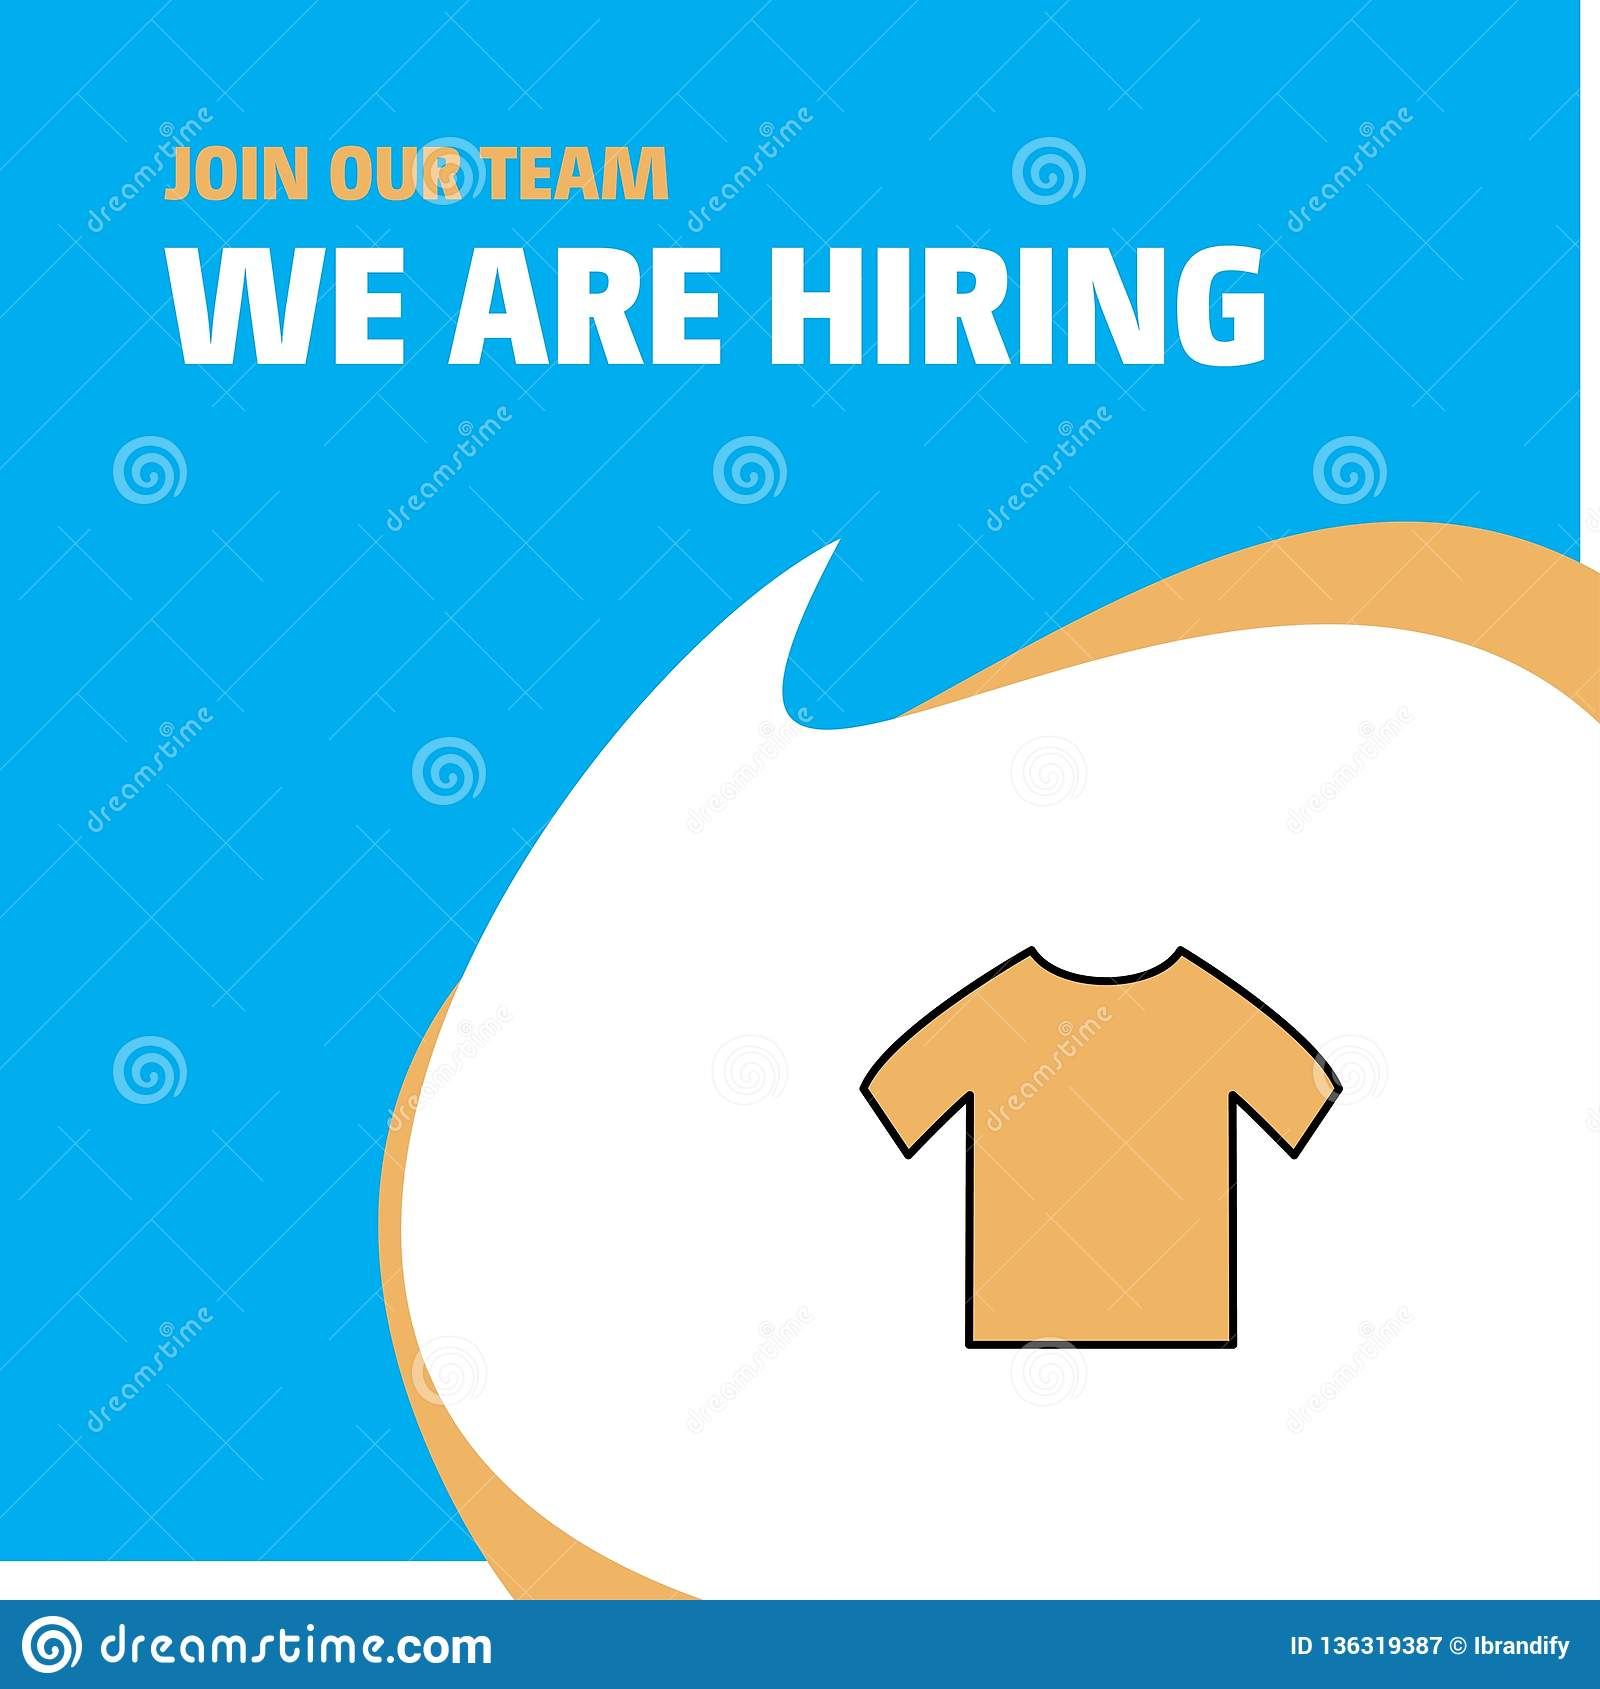 Join Our Team Busienss Company Shirt We Are Hiring Poster Callout Design Vector Background Stock Vector Illustration Of Fashion Clothes 136319387